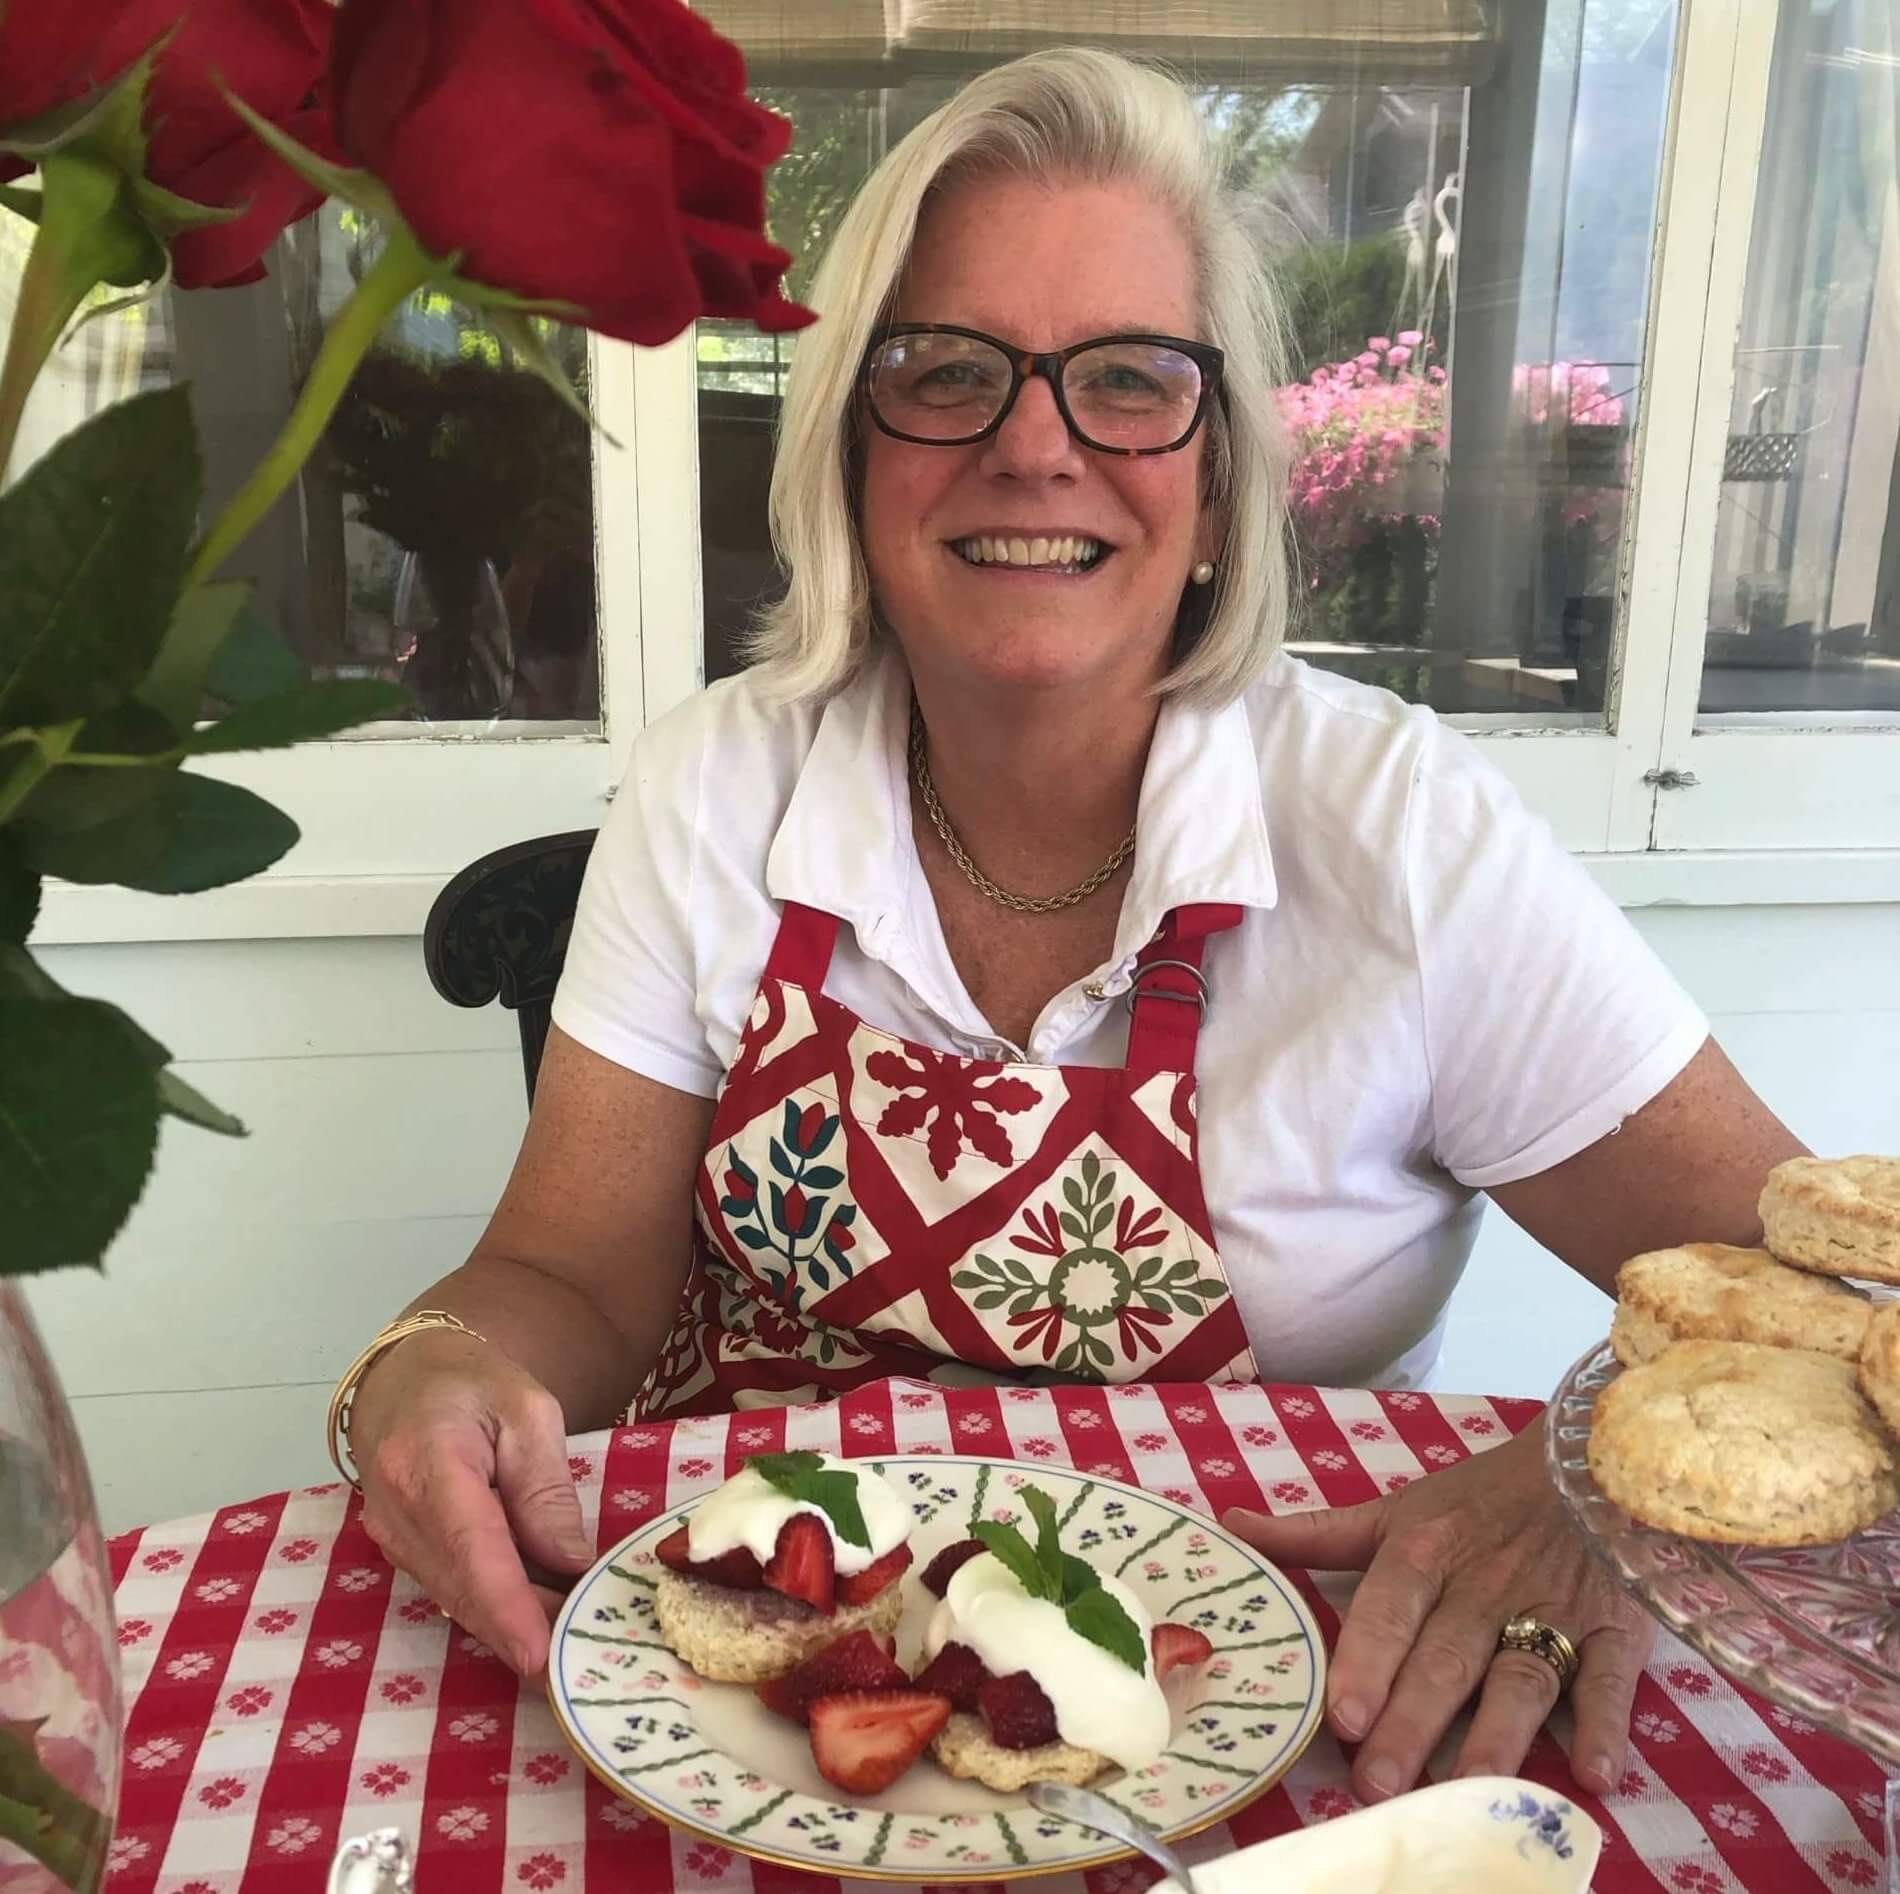 Mrs. Bjorklund Strawberry Shortcake recipe